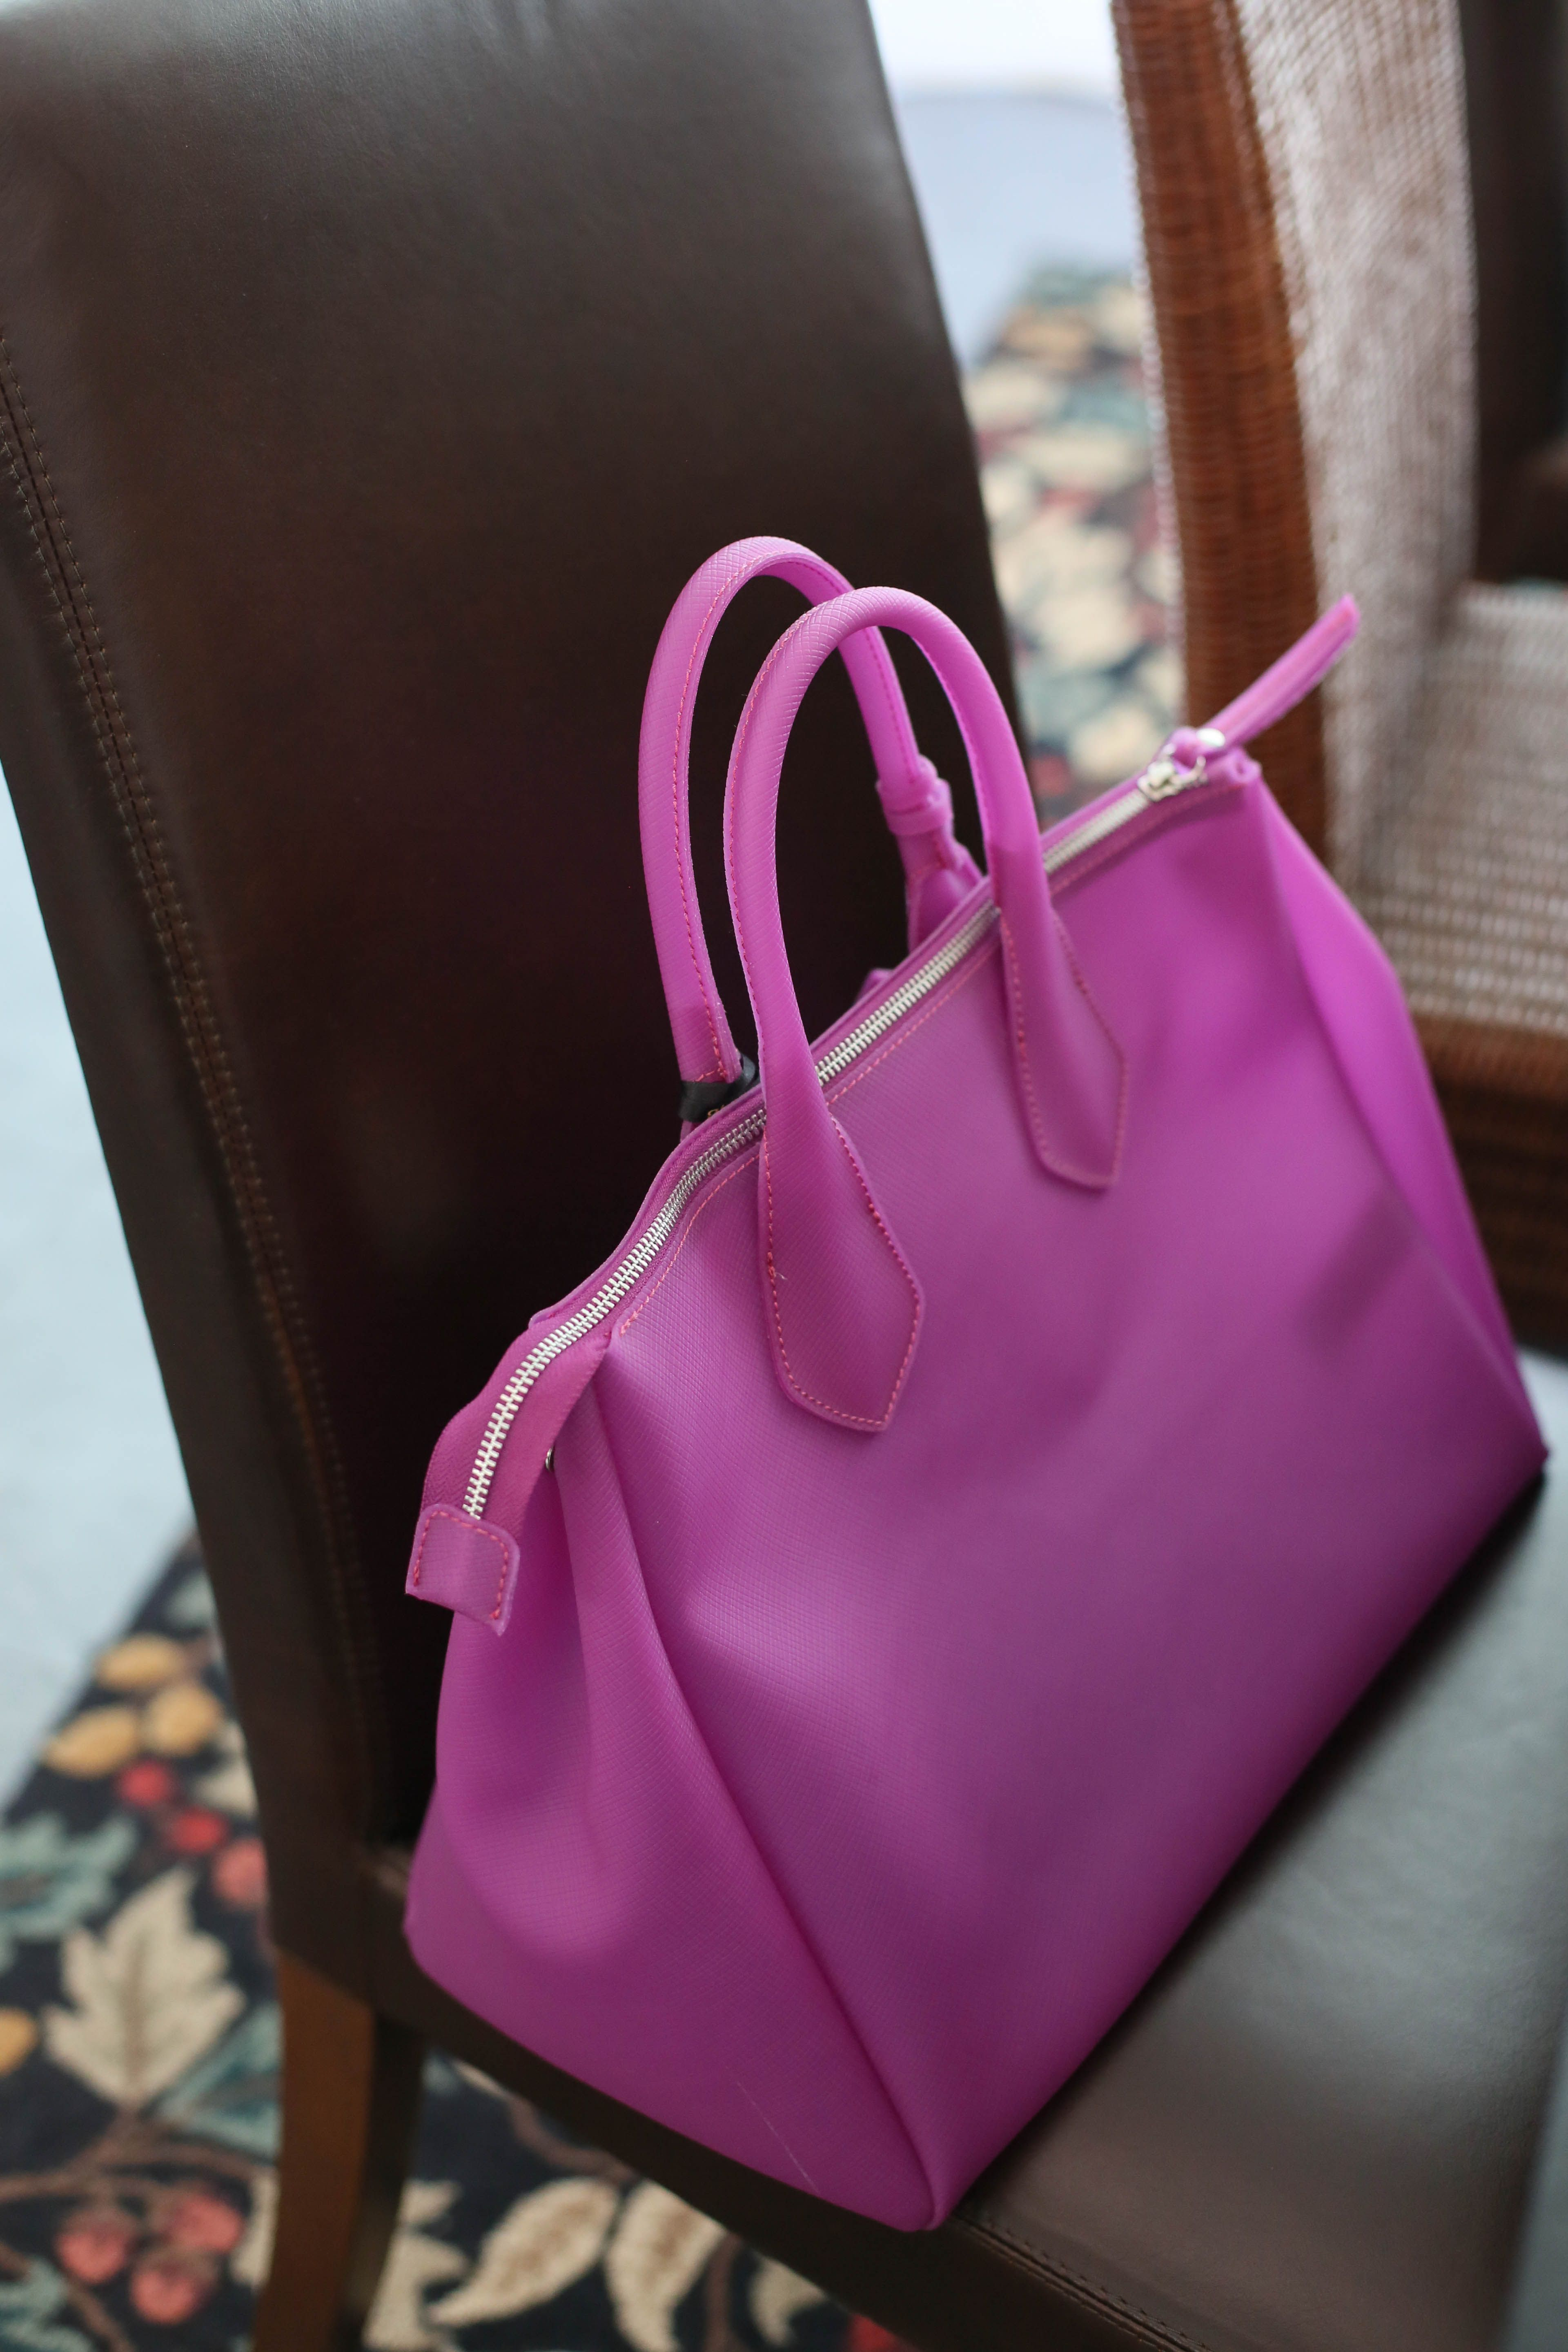 Jelly Bag! in radiant orchid color from Gianni Chiarini of Italy ...